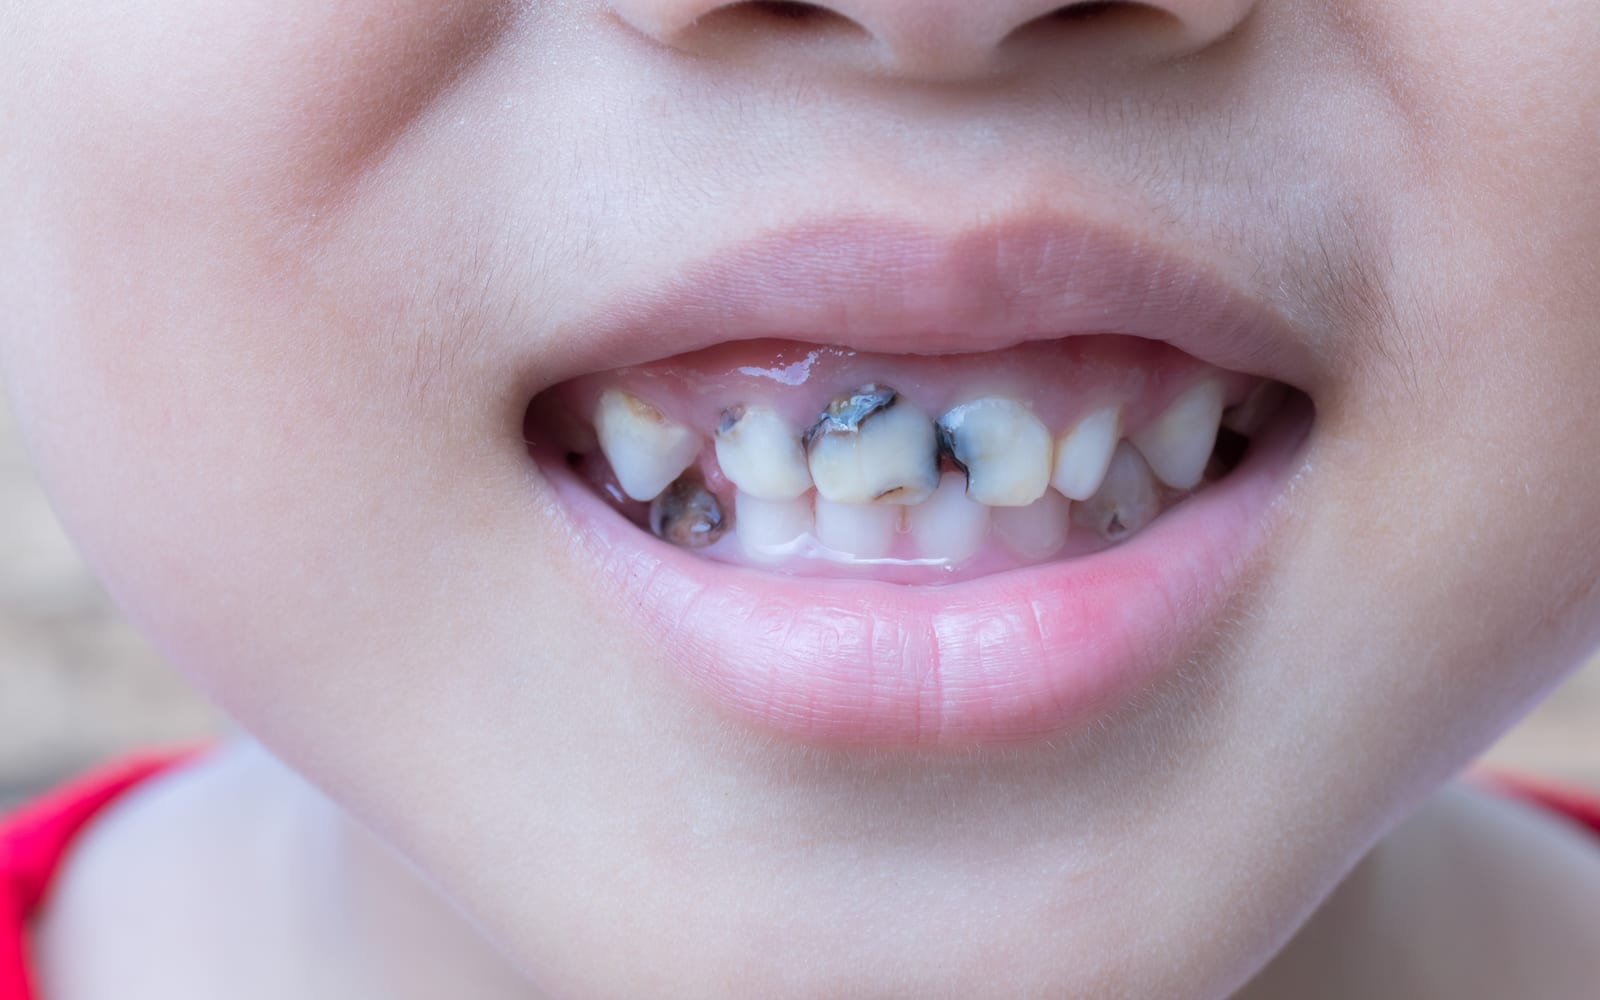 Child with decaying teeth